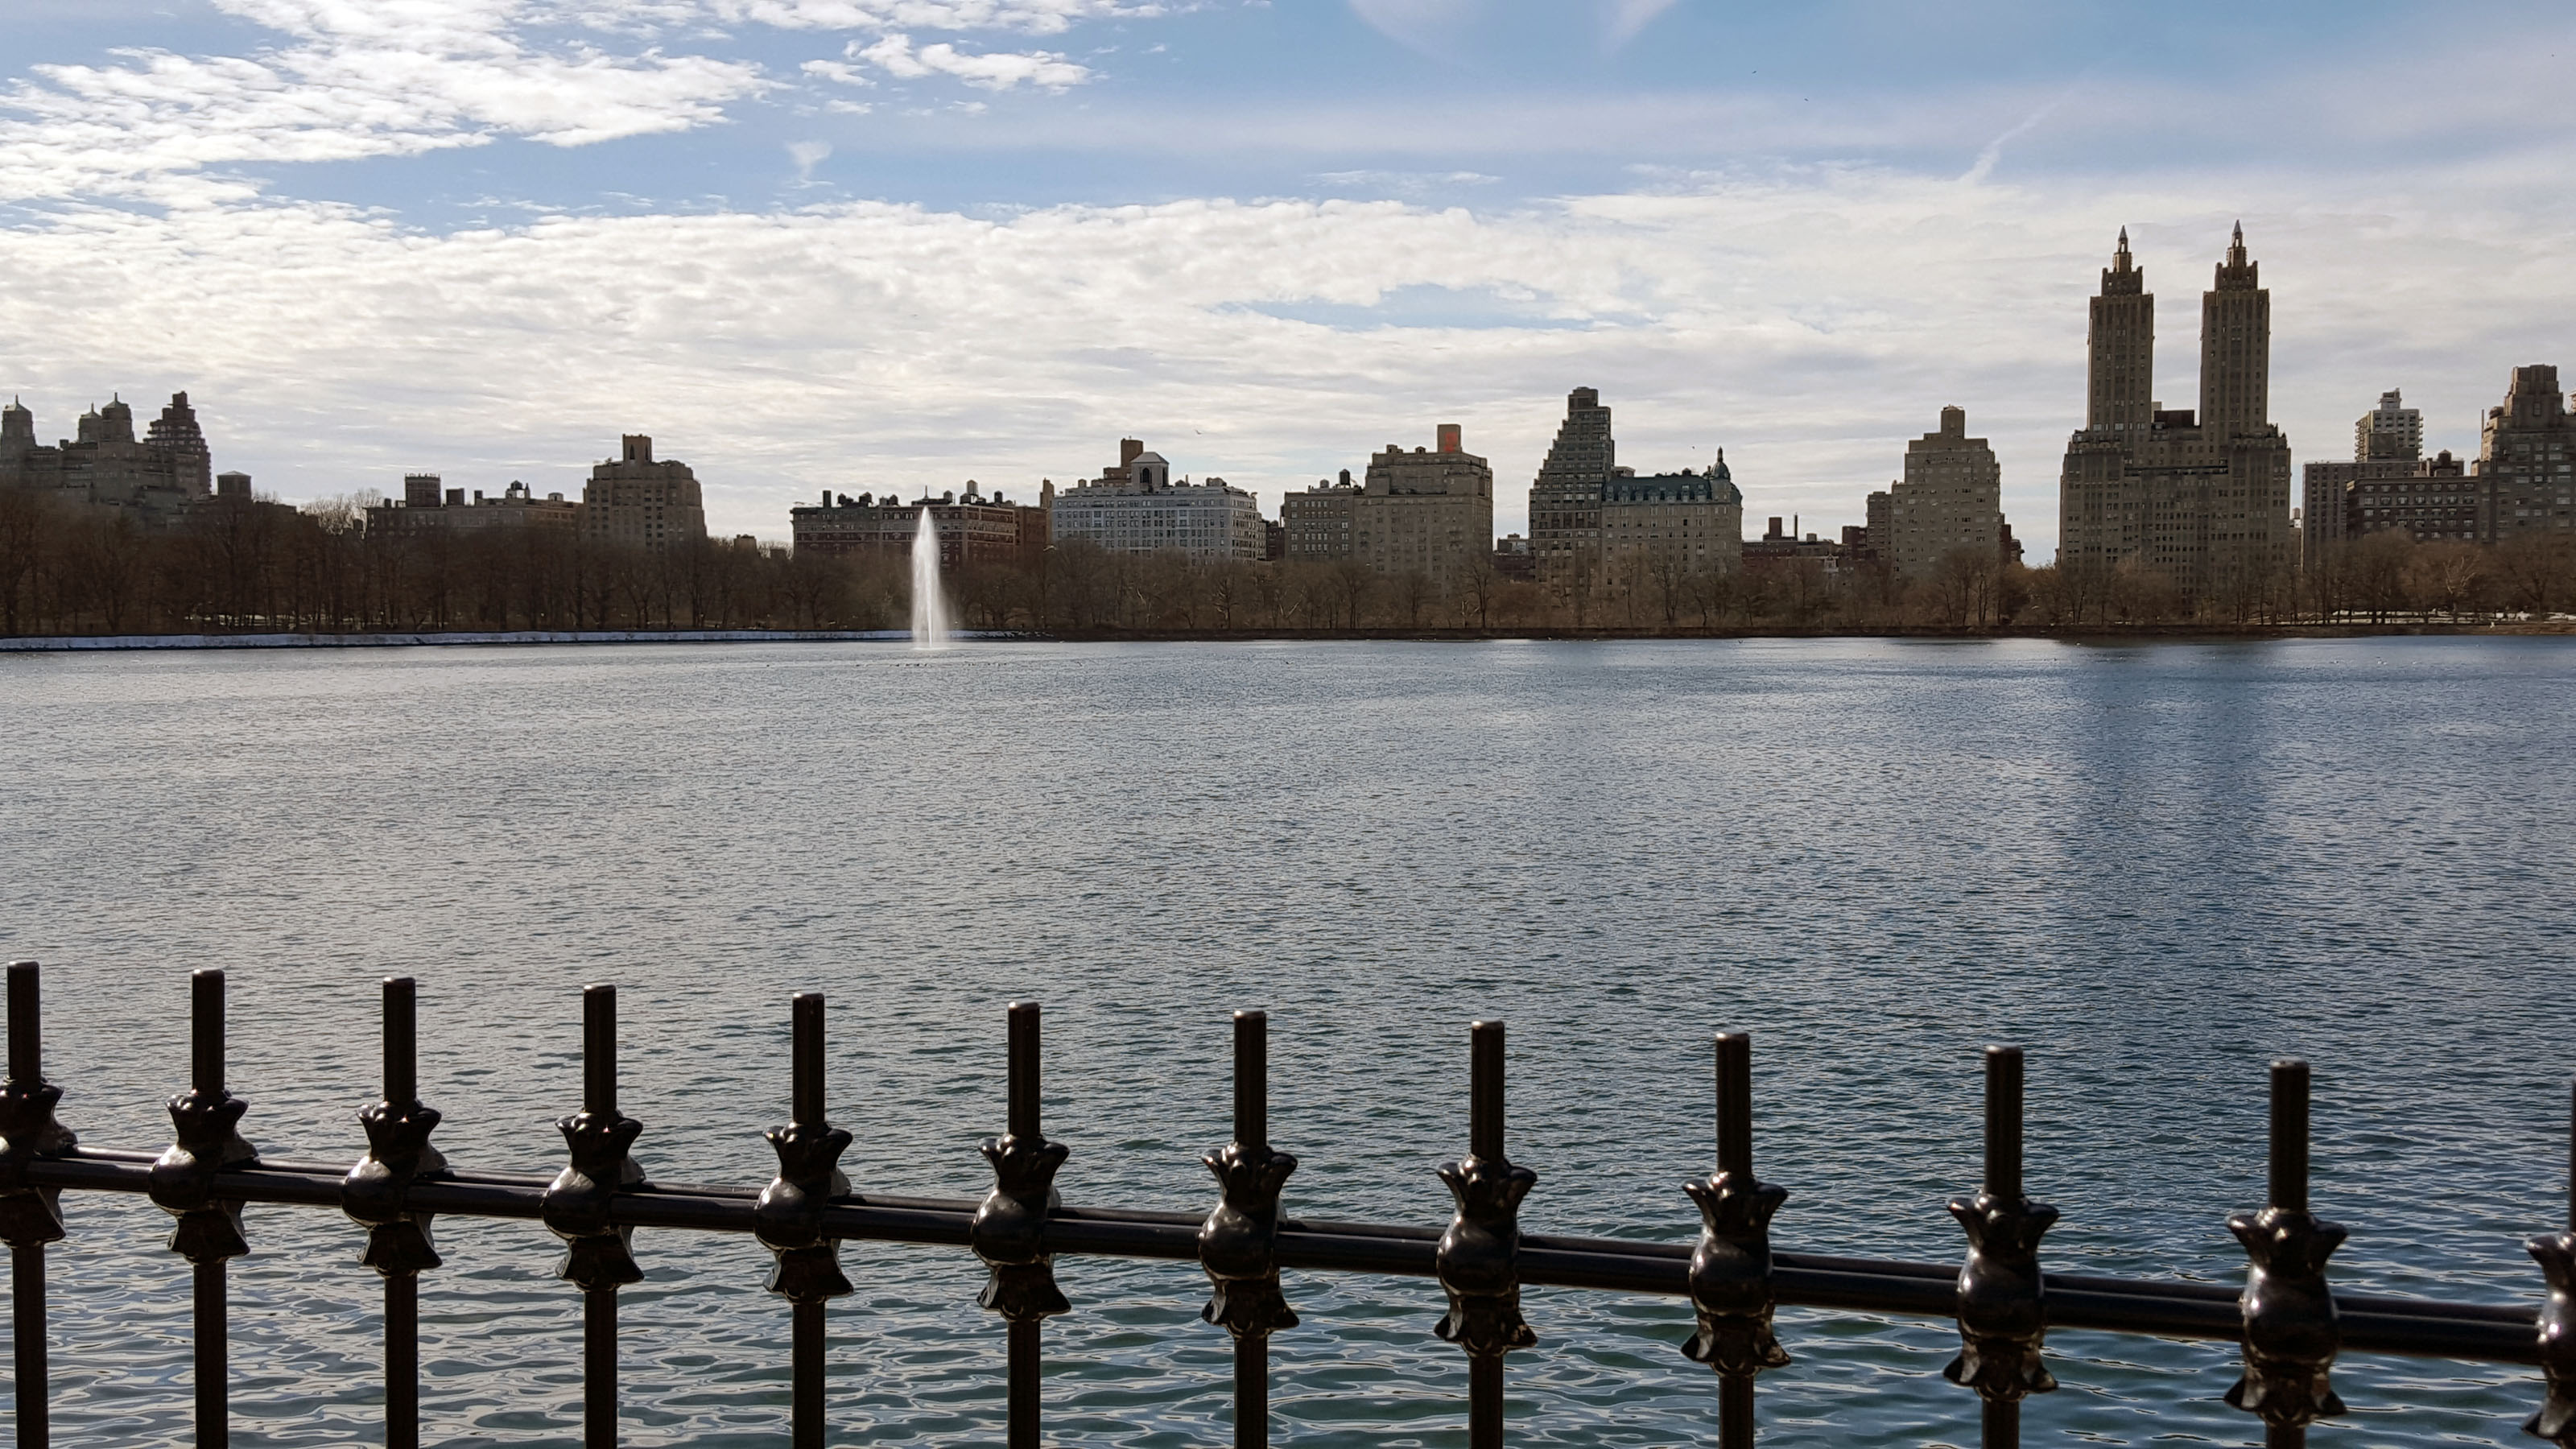 The Jacqueline Kennedy Onassis Reservoir